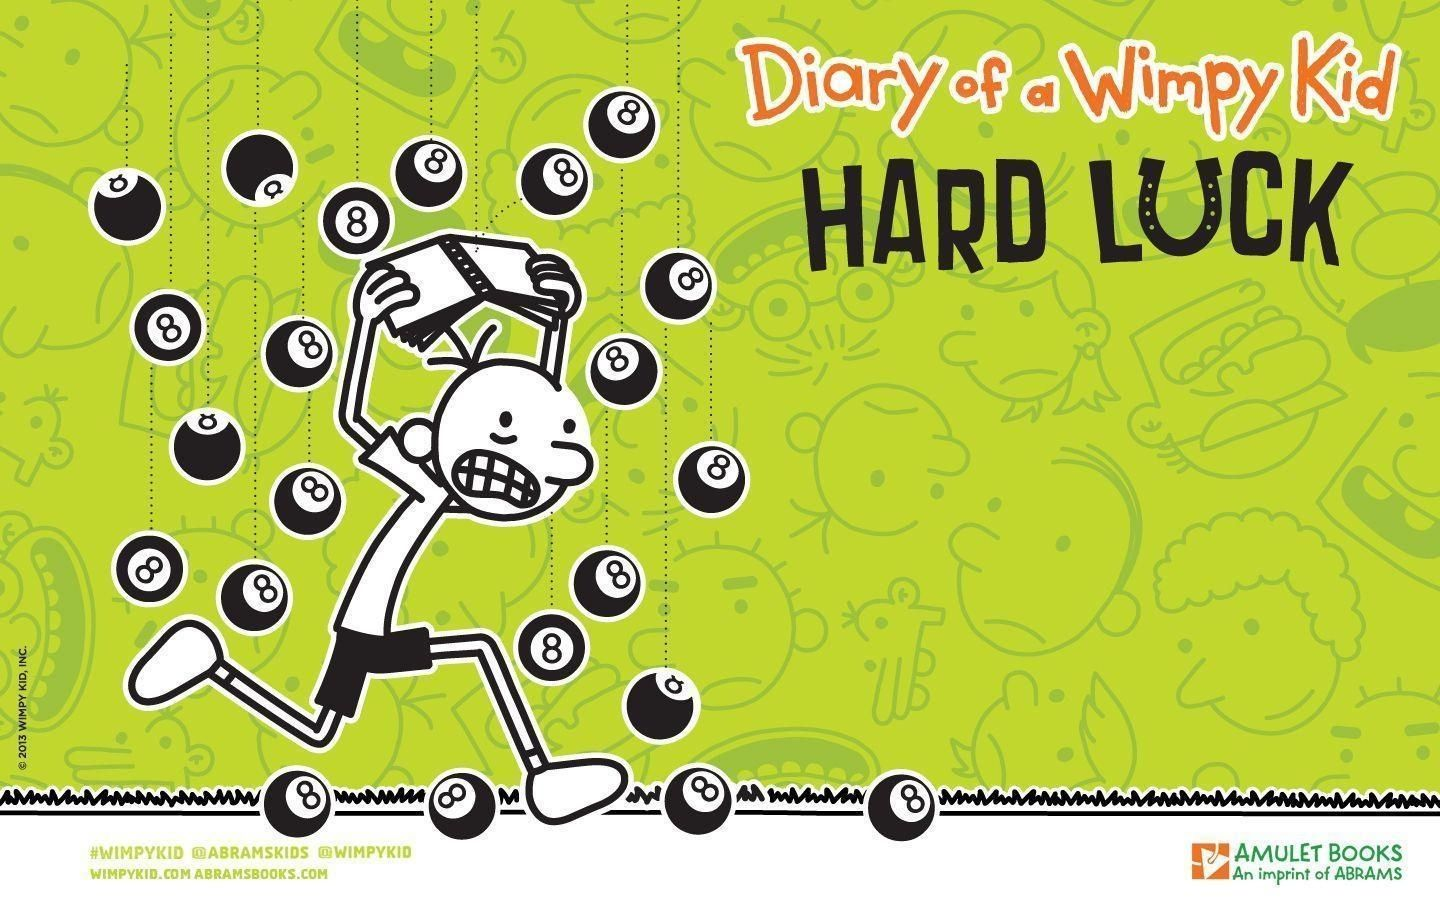 10 Top Diary Of A Wimpy Kid Wallpaper Full Hd 1080p For Pc Background Wimpy Kid Kids Book Club Wimpy Kid Books